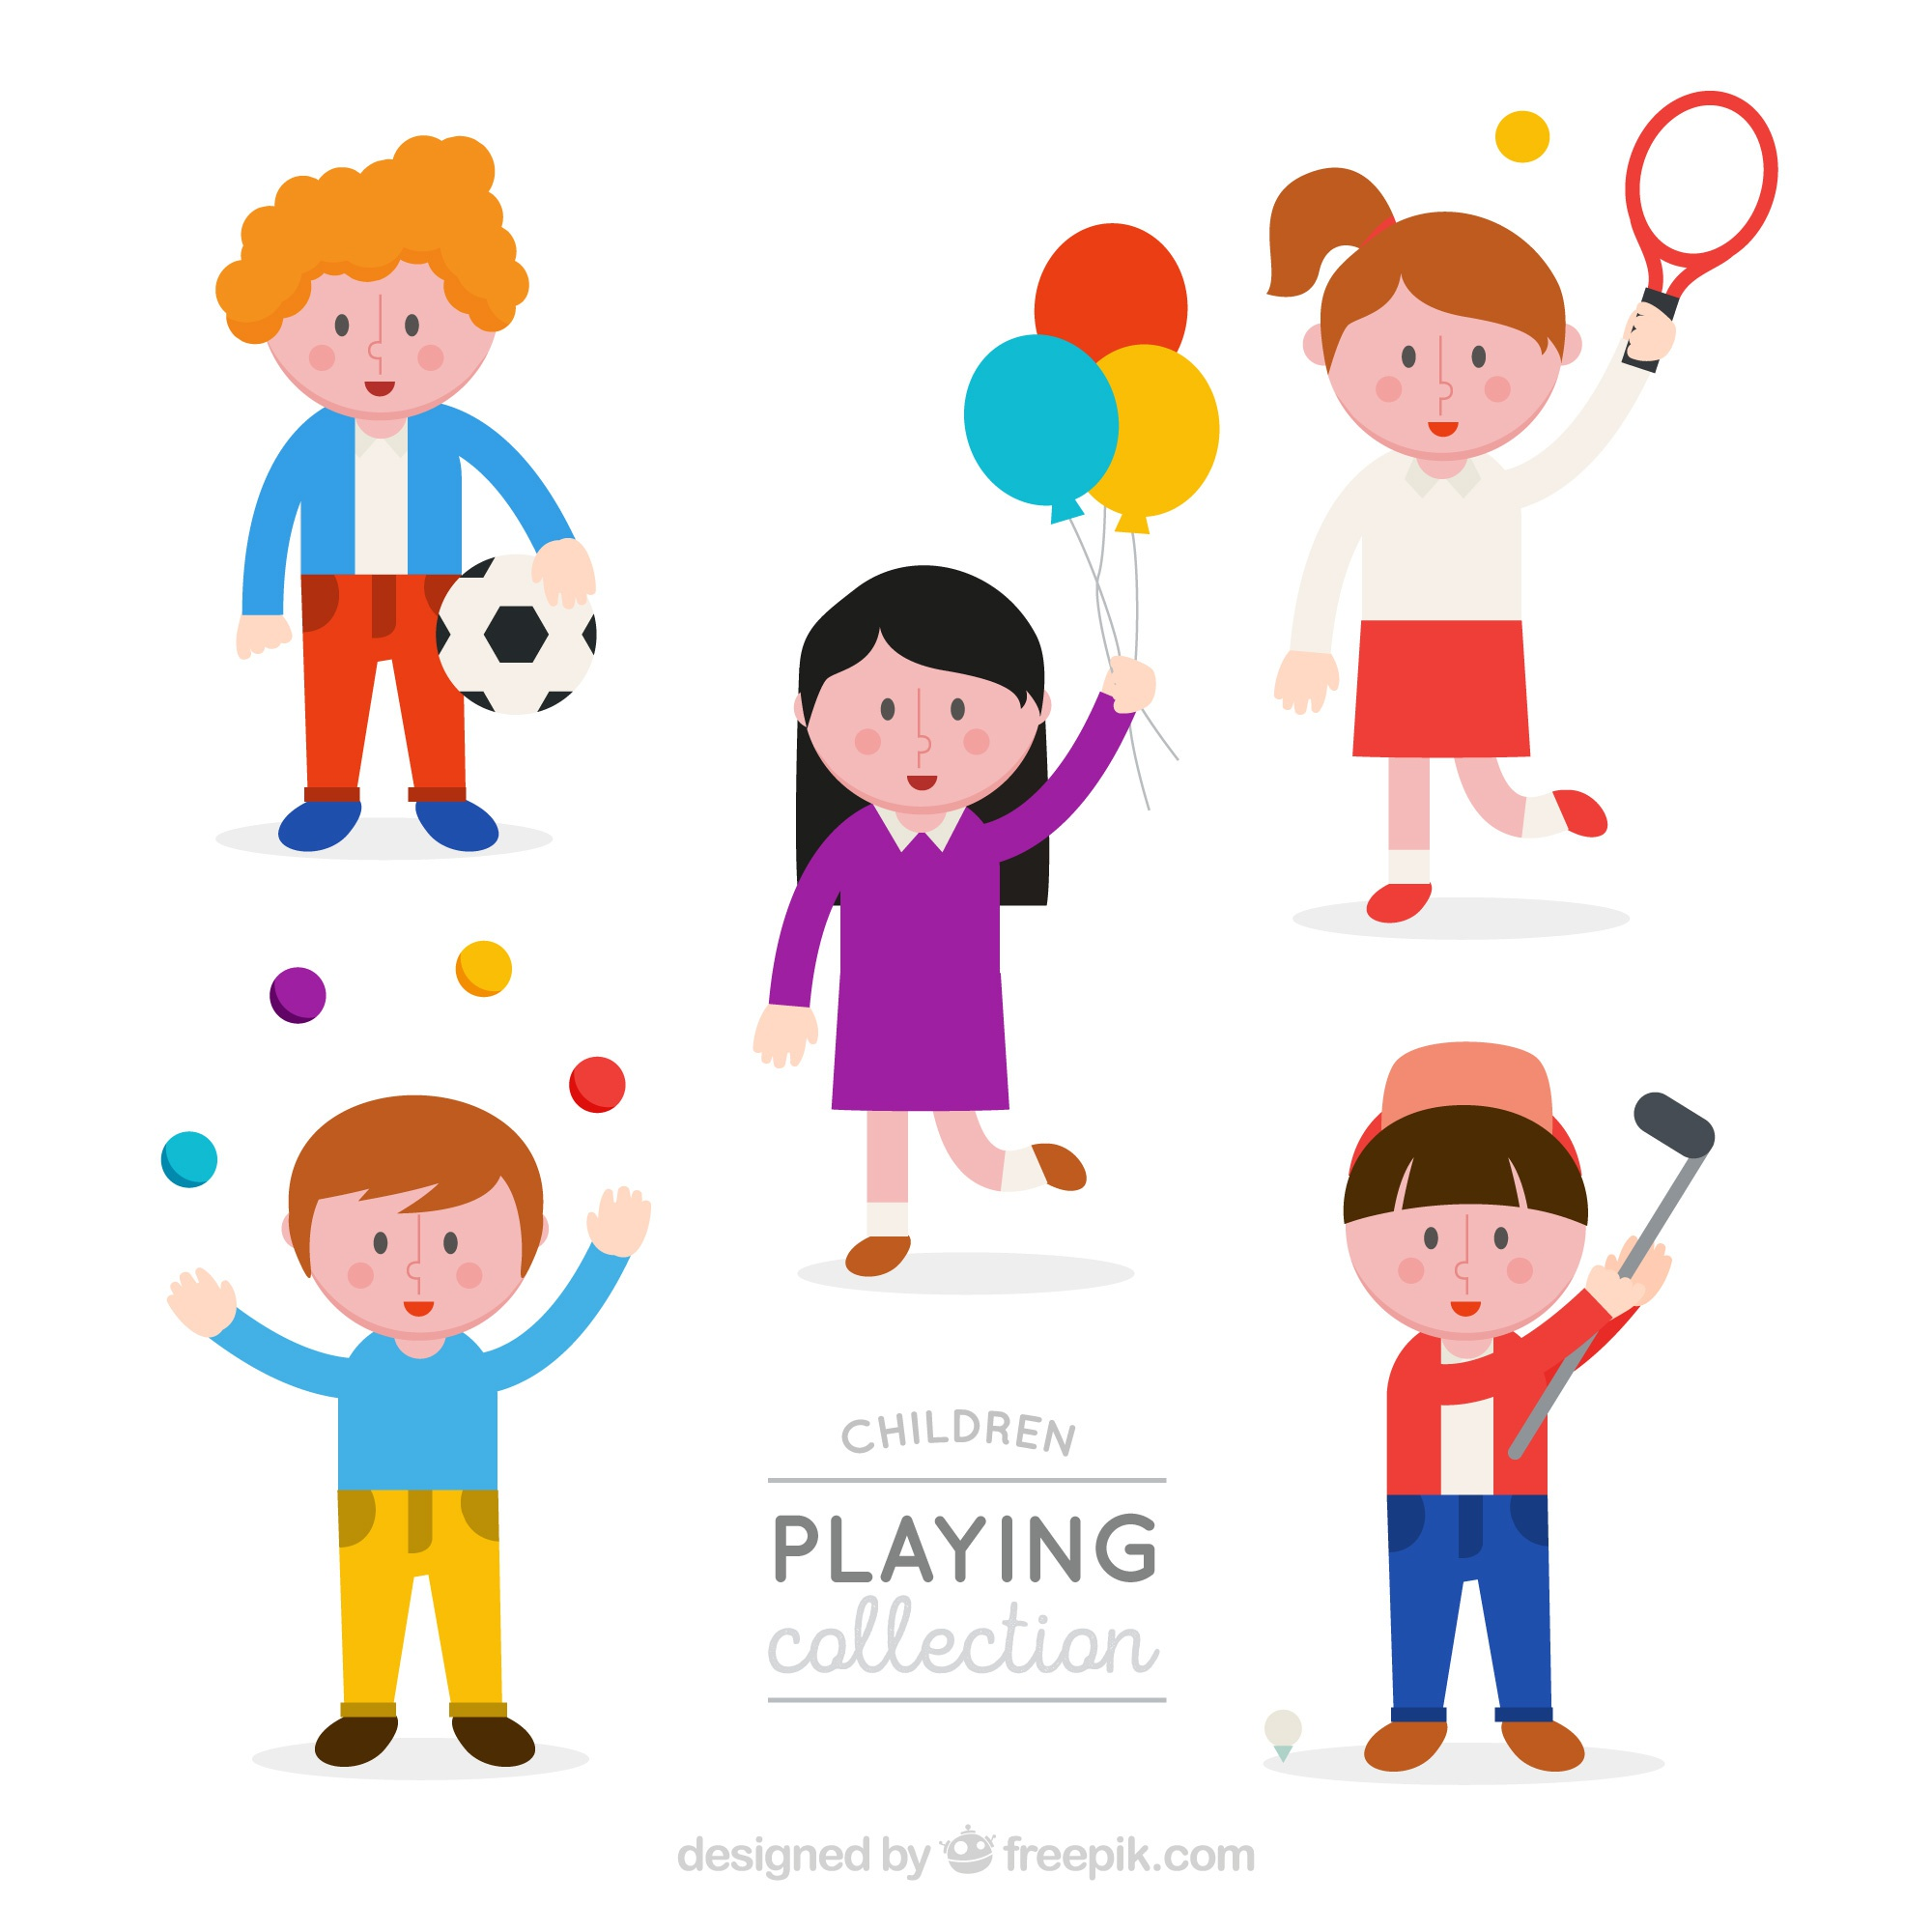 Several children with elements to play